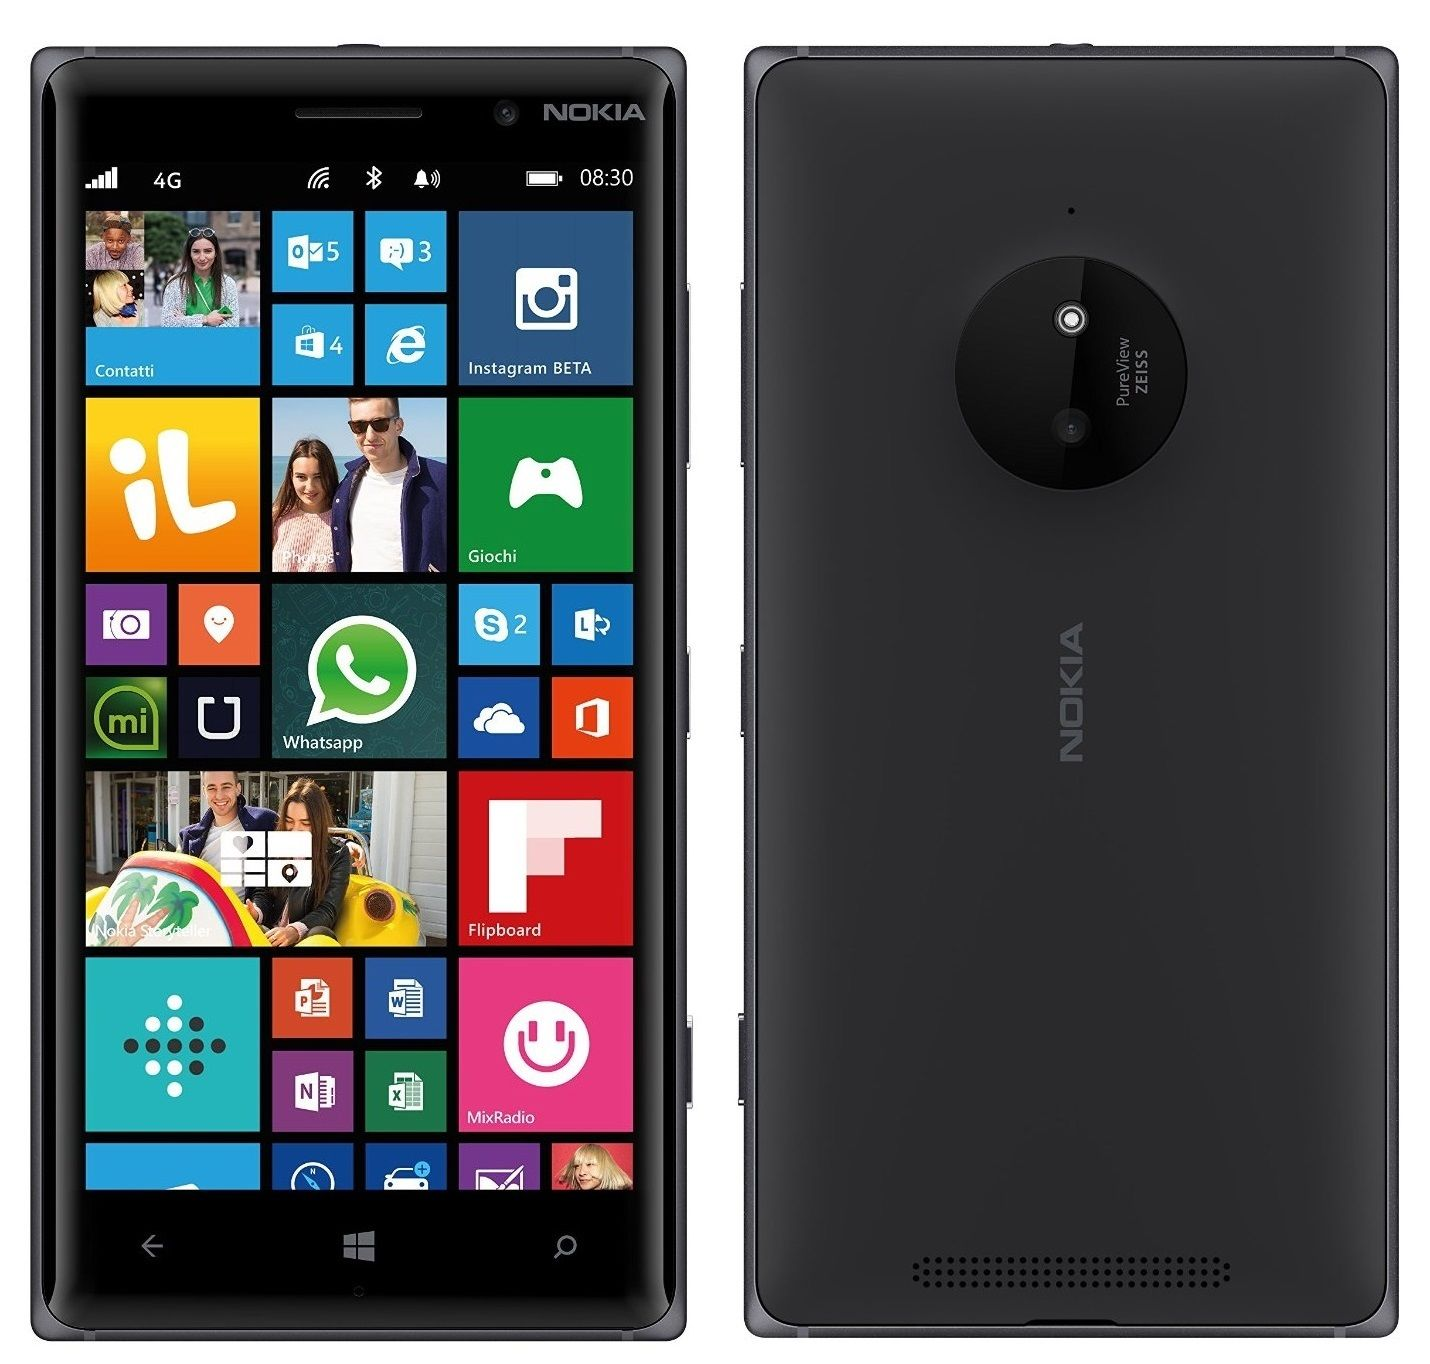 Nokia lumia 830 4g lte bluetooth camera windows 8 phone for Window 4g phone